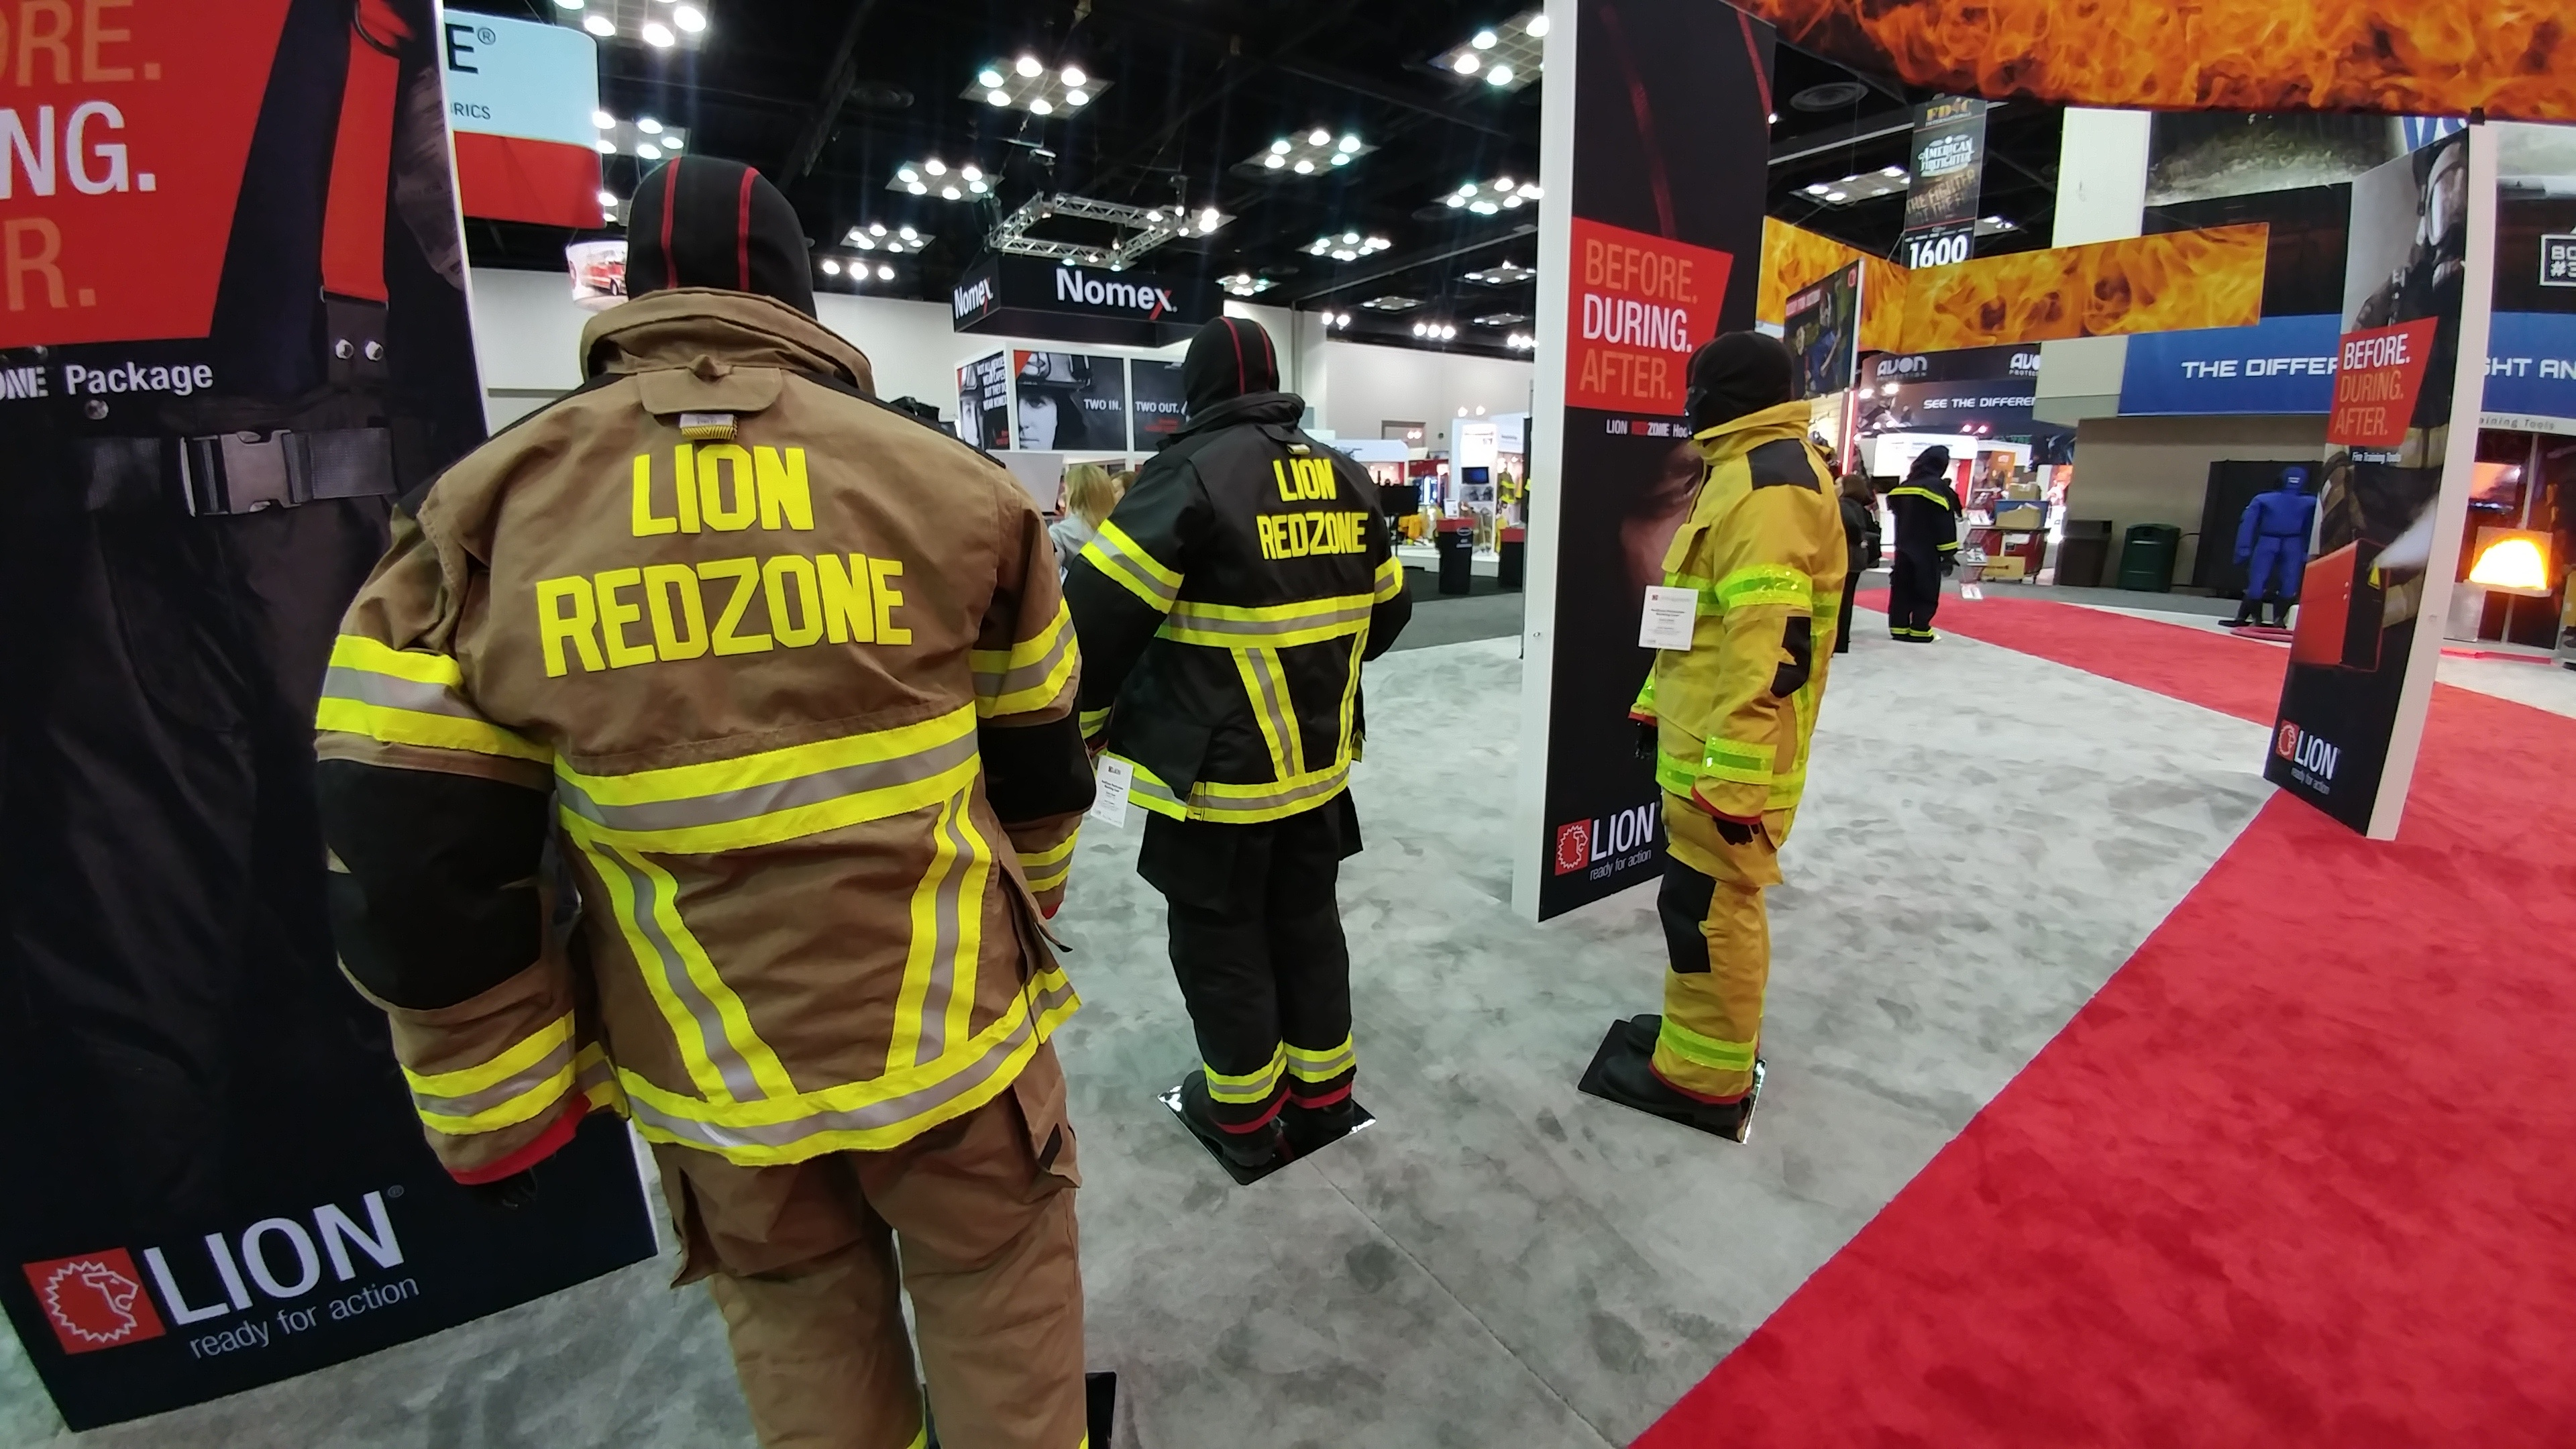 LION LAUNCHES REDZONE PPE CONTAMINANT CONTROL PACKAGE